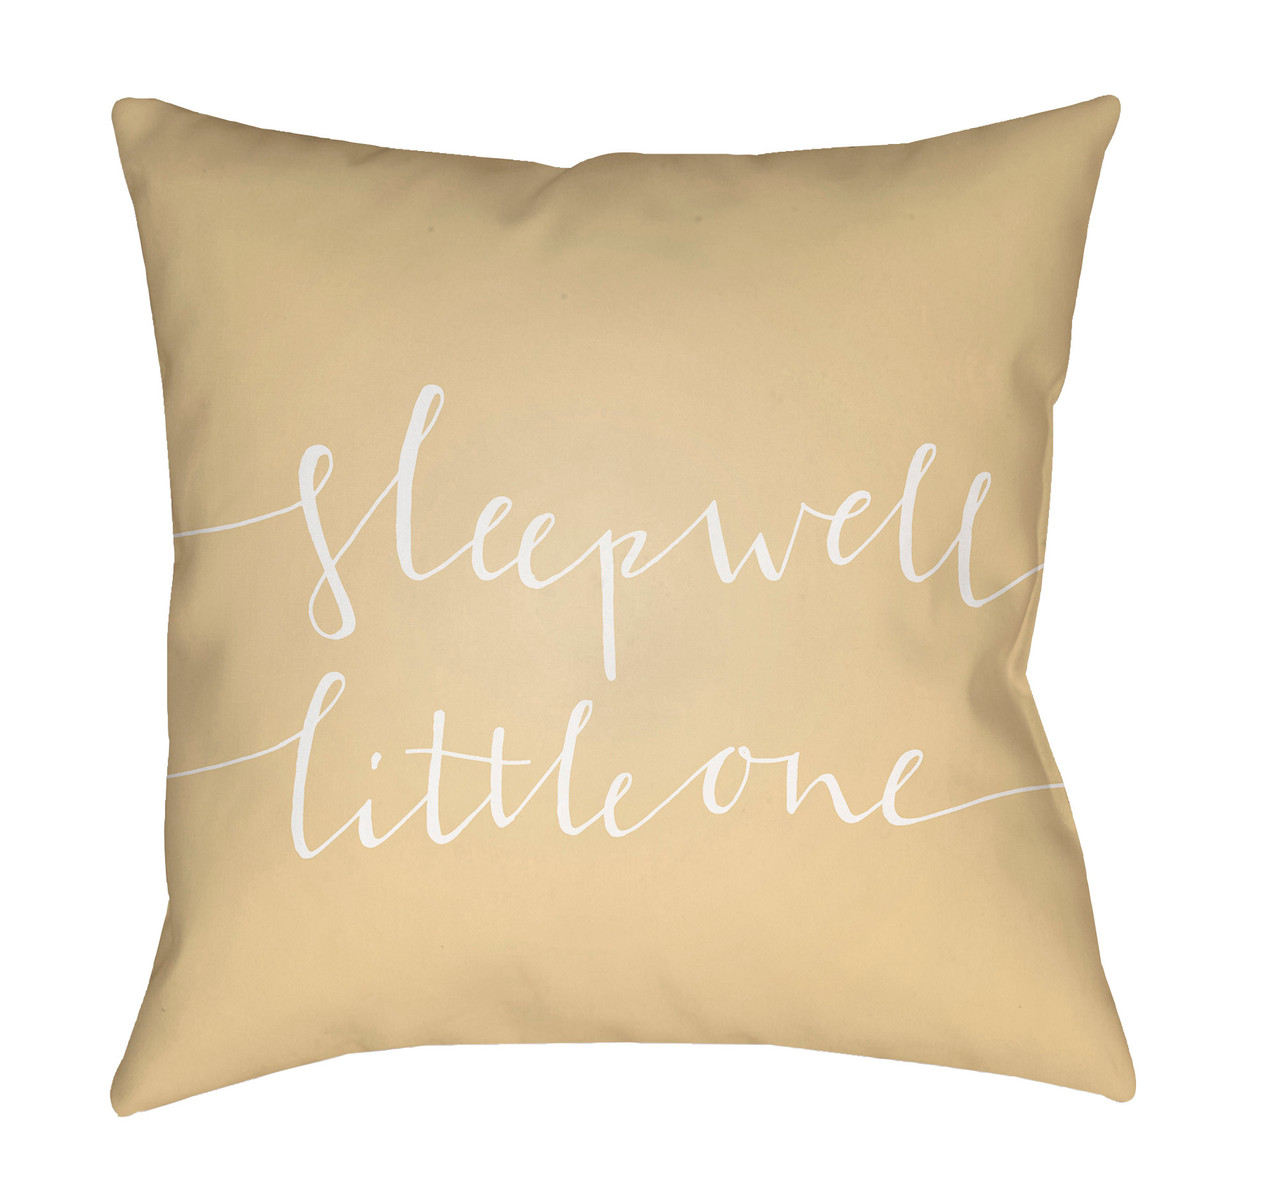 20 Yellow White Sleep Well Little One Printed Square Throw Pillow Cover Christmas Central